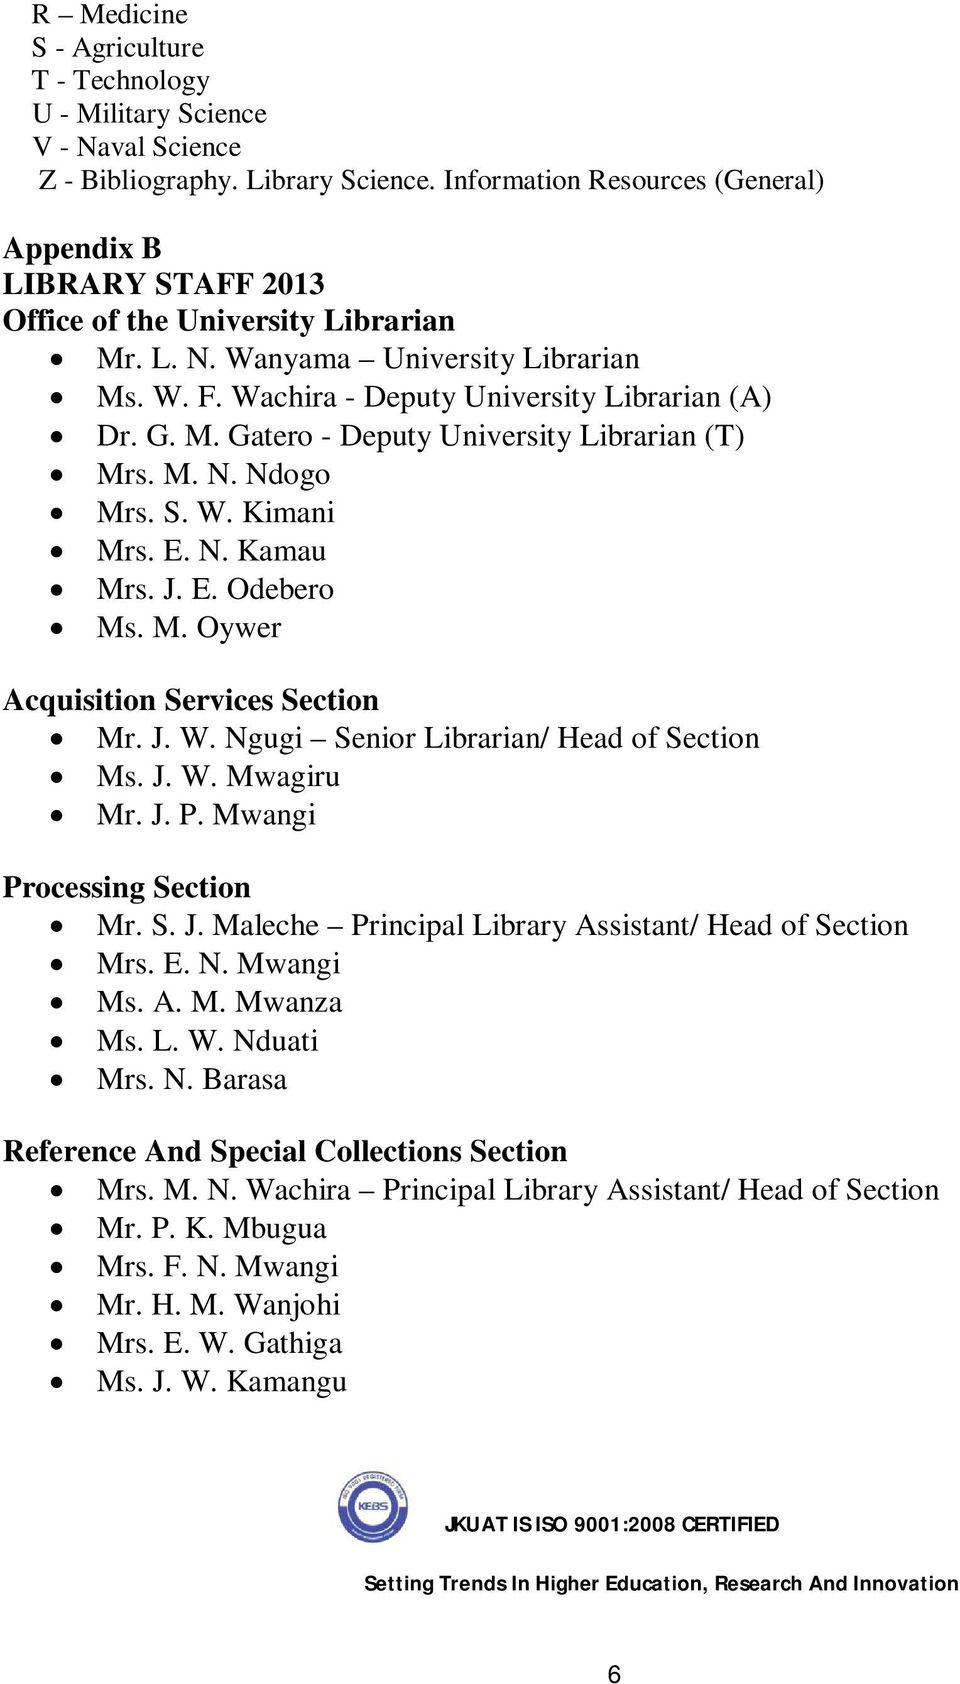 M. N. Ndogo Mrs. S. W. Kimani Mrs. E. N. Kamau Mrs. J. E. Odebero Ms. M. Oywer Acquisition Services Section Mr. J. W. Ngugi Senior Librarian/ Head of Section Ms. J. W. Mwagiru Mr. J. P.